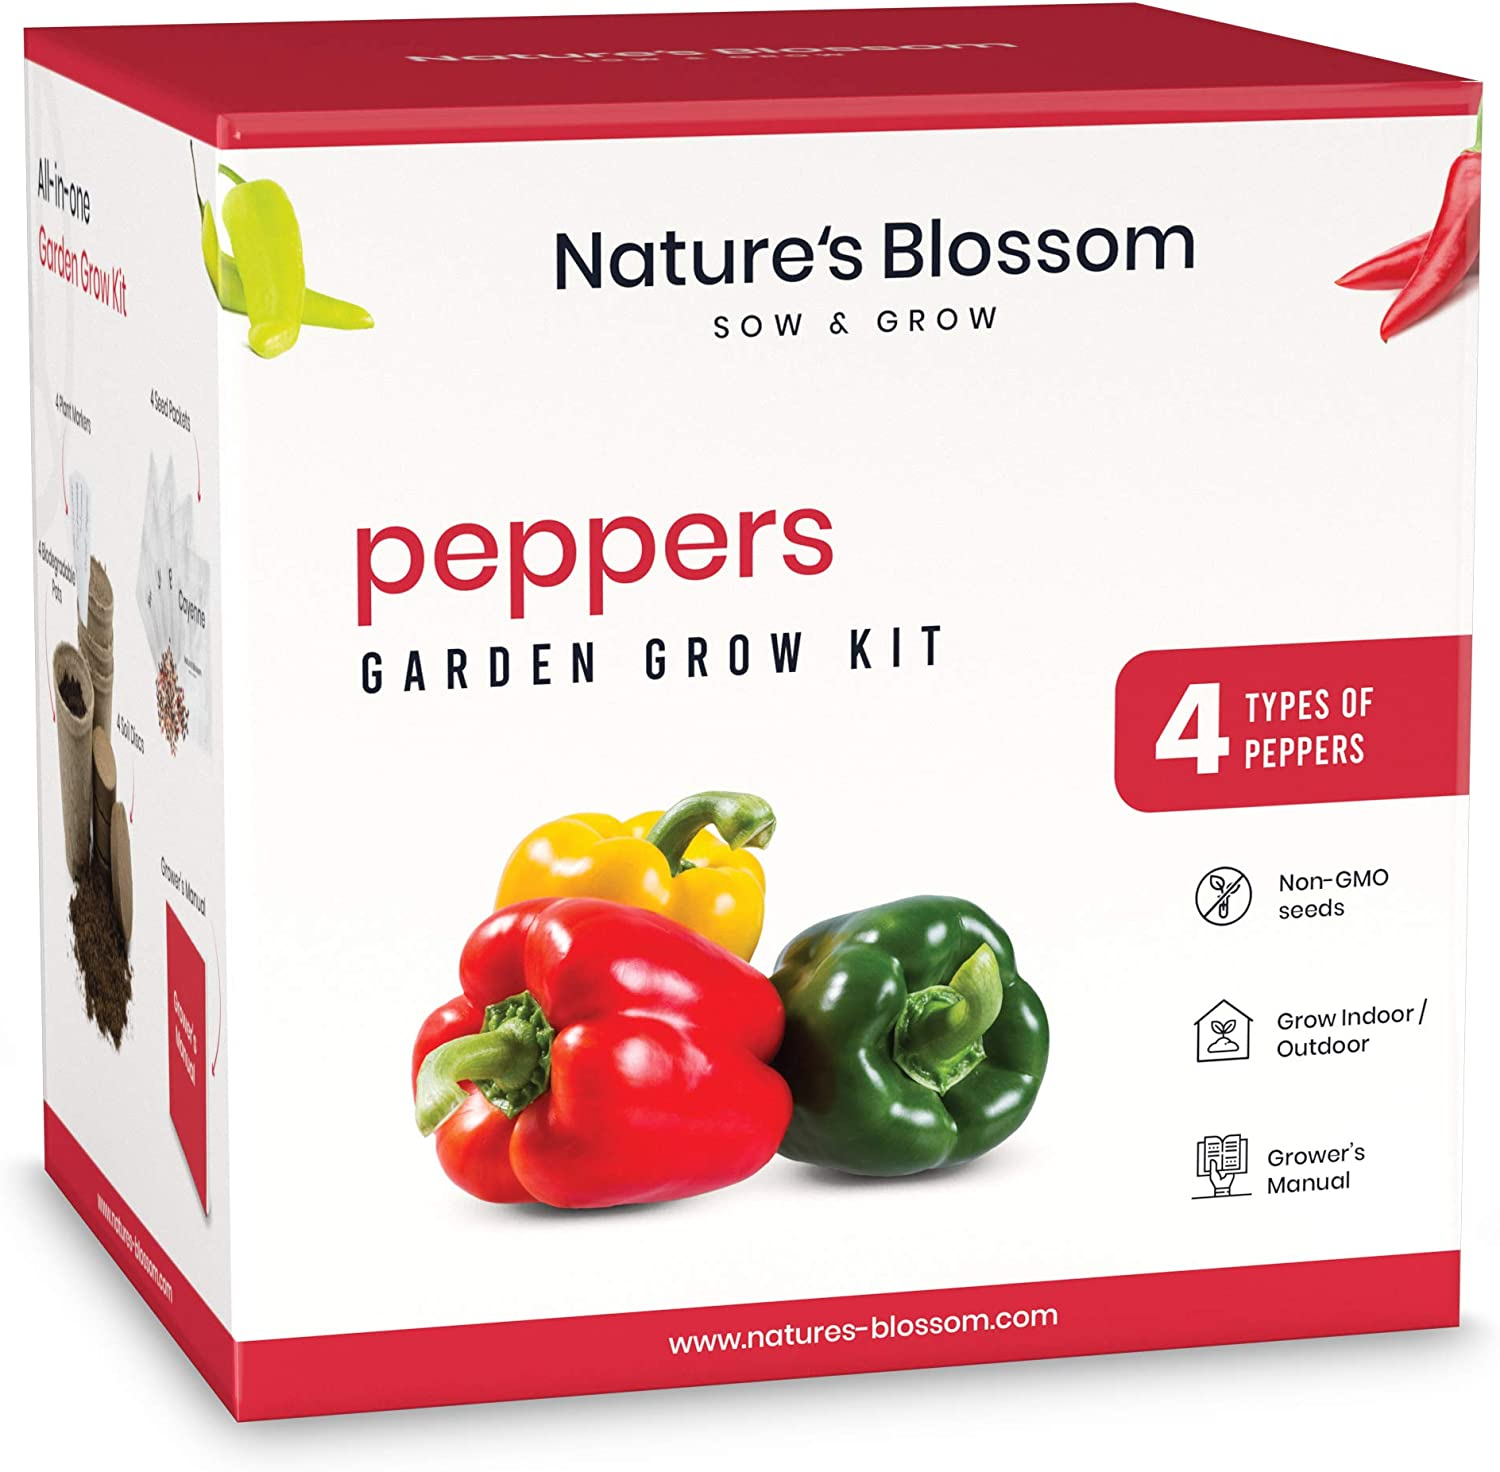 Nature's Blossom Sow and Grow Seed Starter Kits - Beginner Gardening Sets with Everything You Need to Grow Plants from Seed (Peppers)